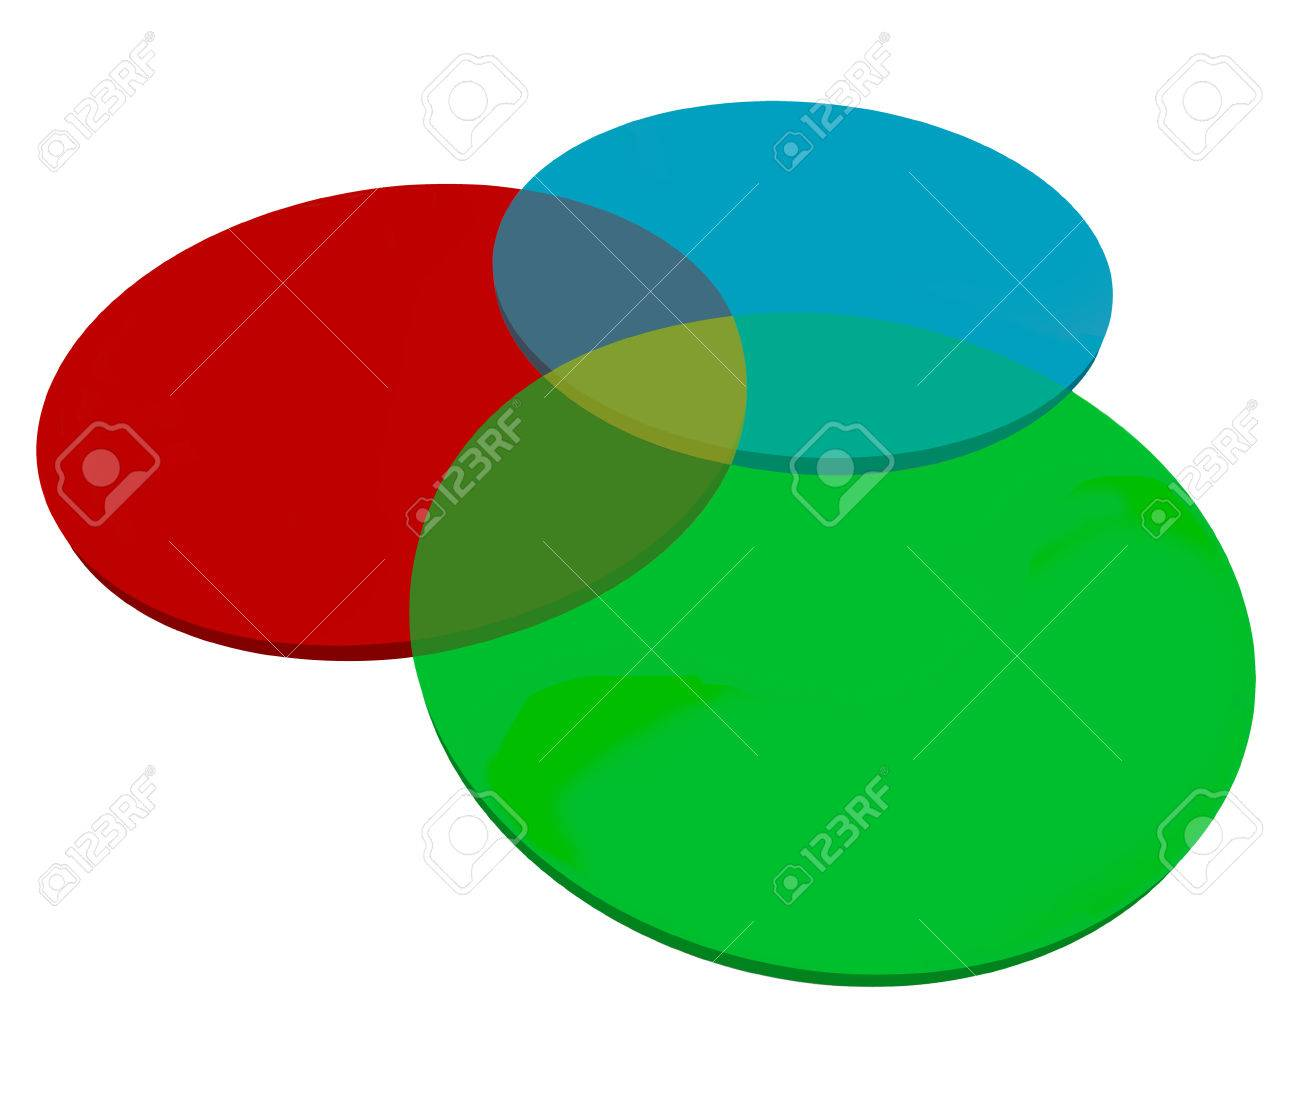 Three or 3 venn diagram overlapping circles to illustrate shared three or 3 venn diagram overlapping circles to illustrate shared or common qualities characteristics pooptronica